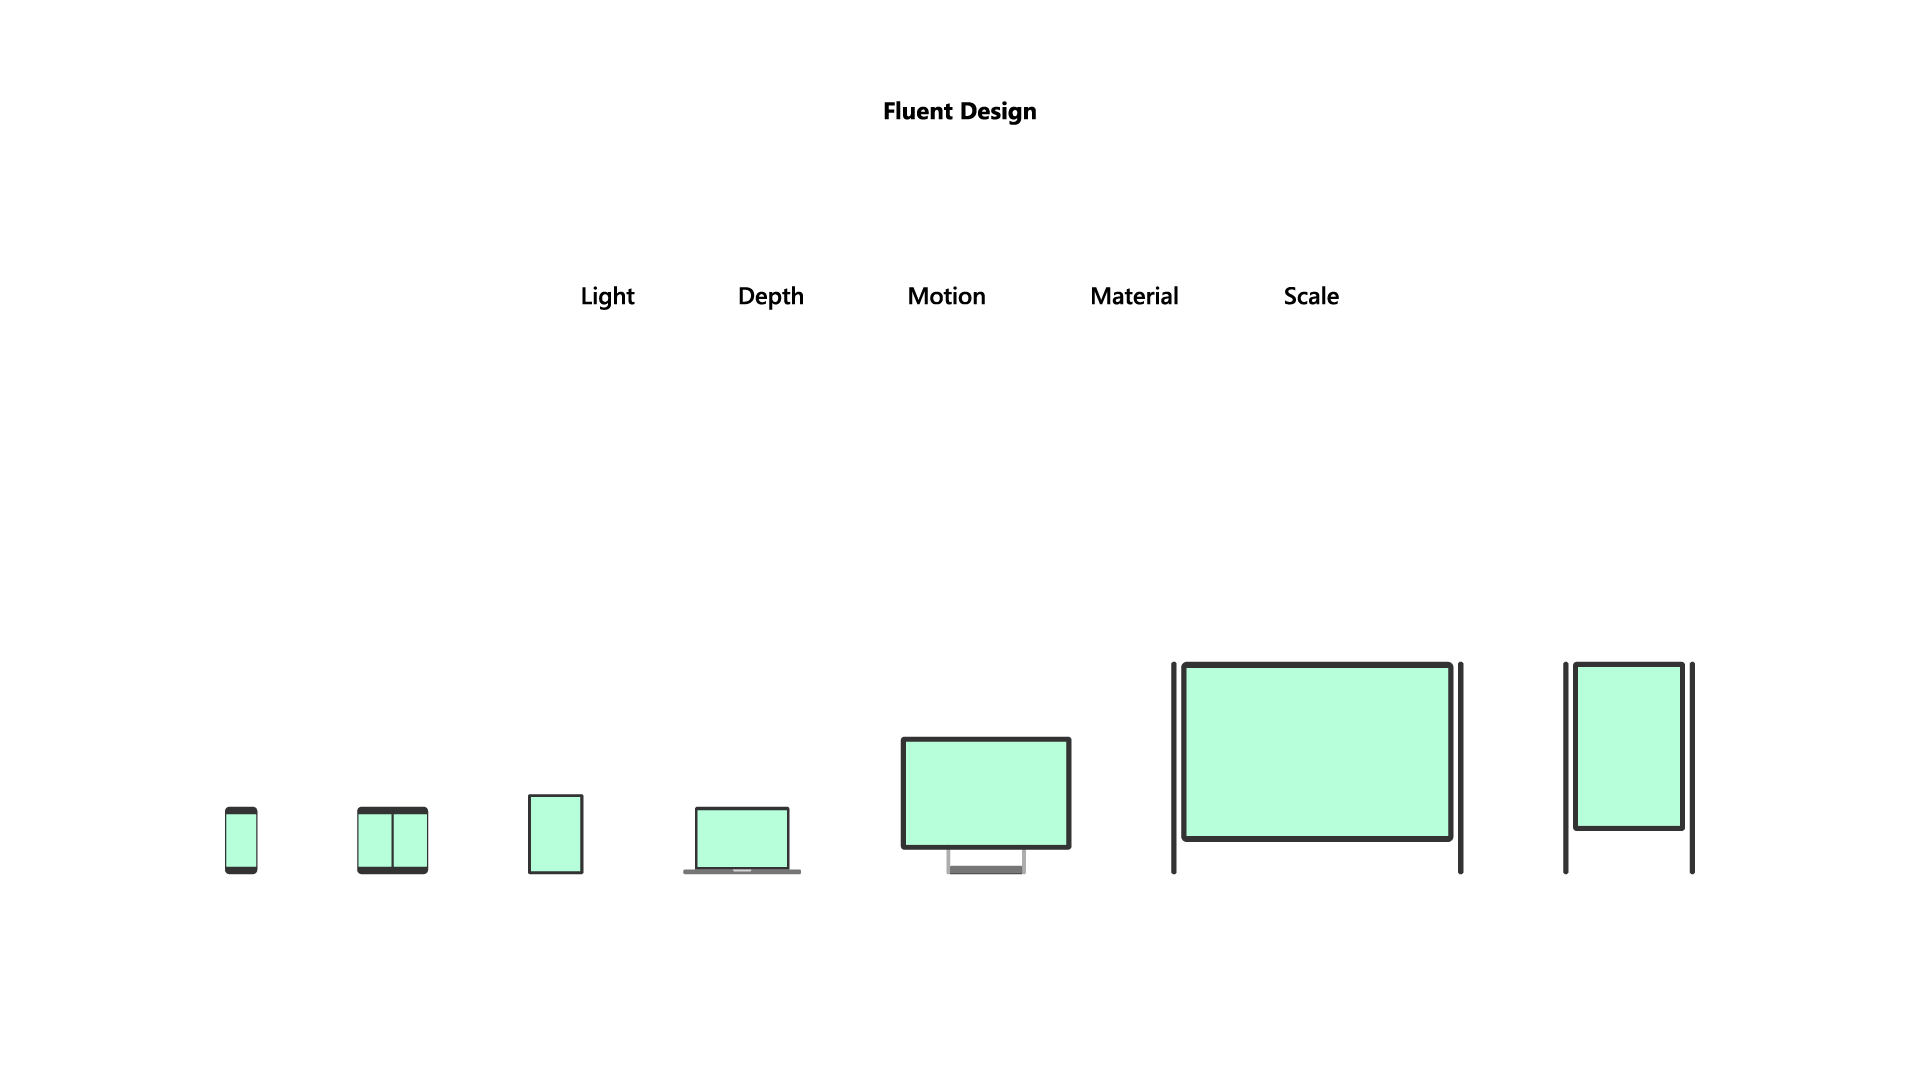 a_DesignGuide_Page_03.png